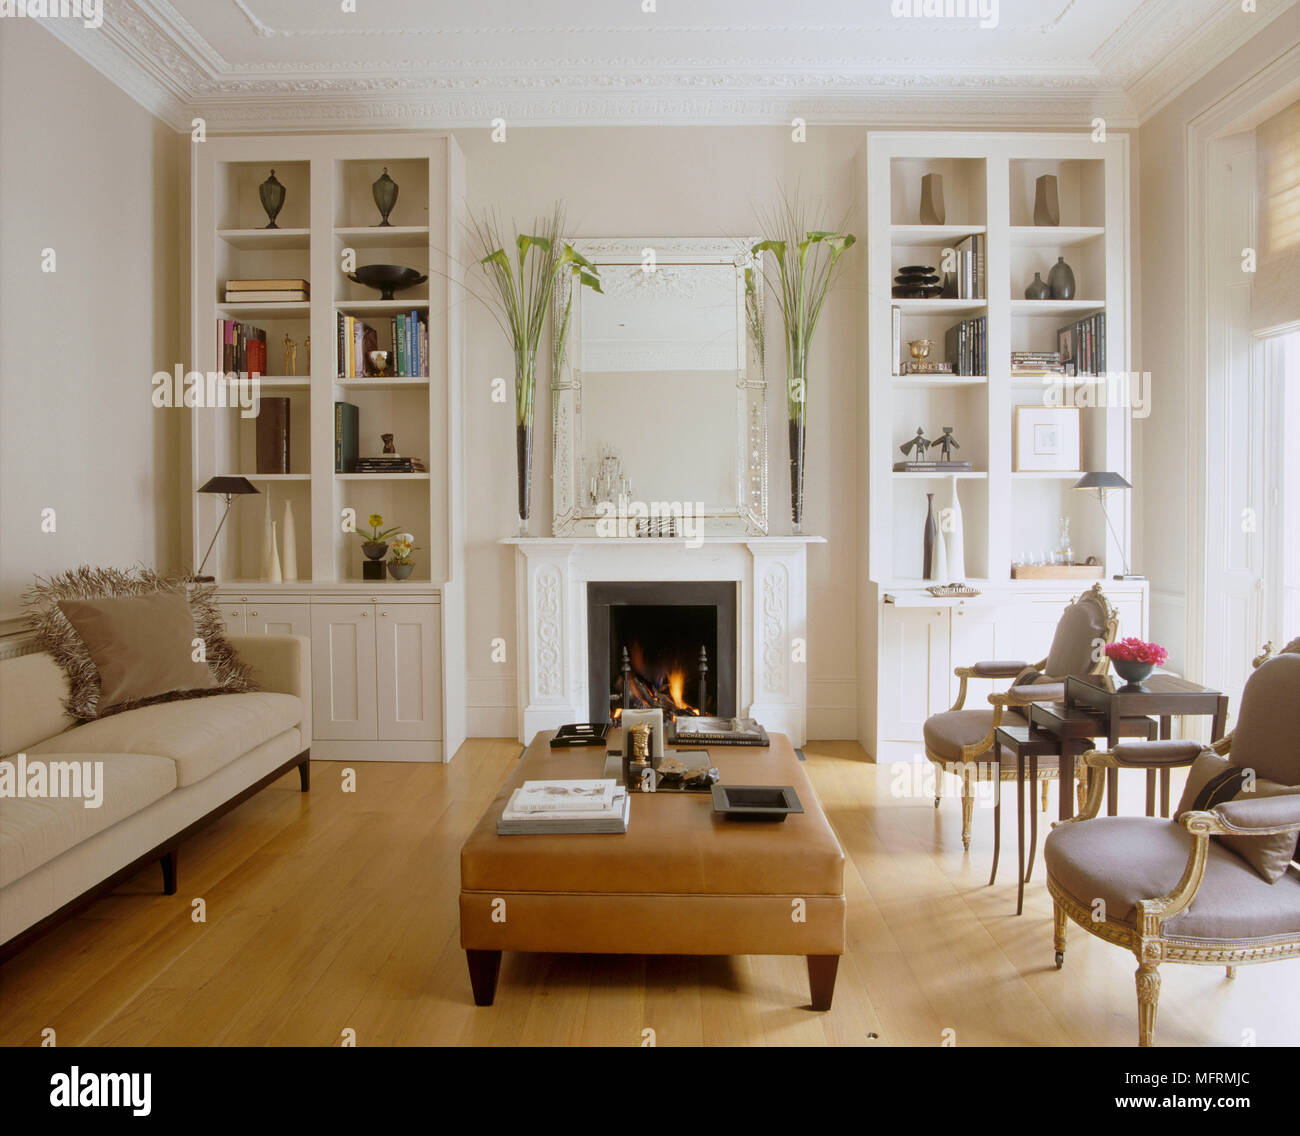 A Modern White Sitting Room With Fireplace And Fire Lit